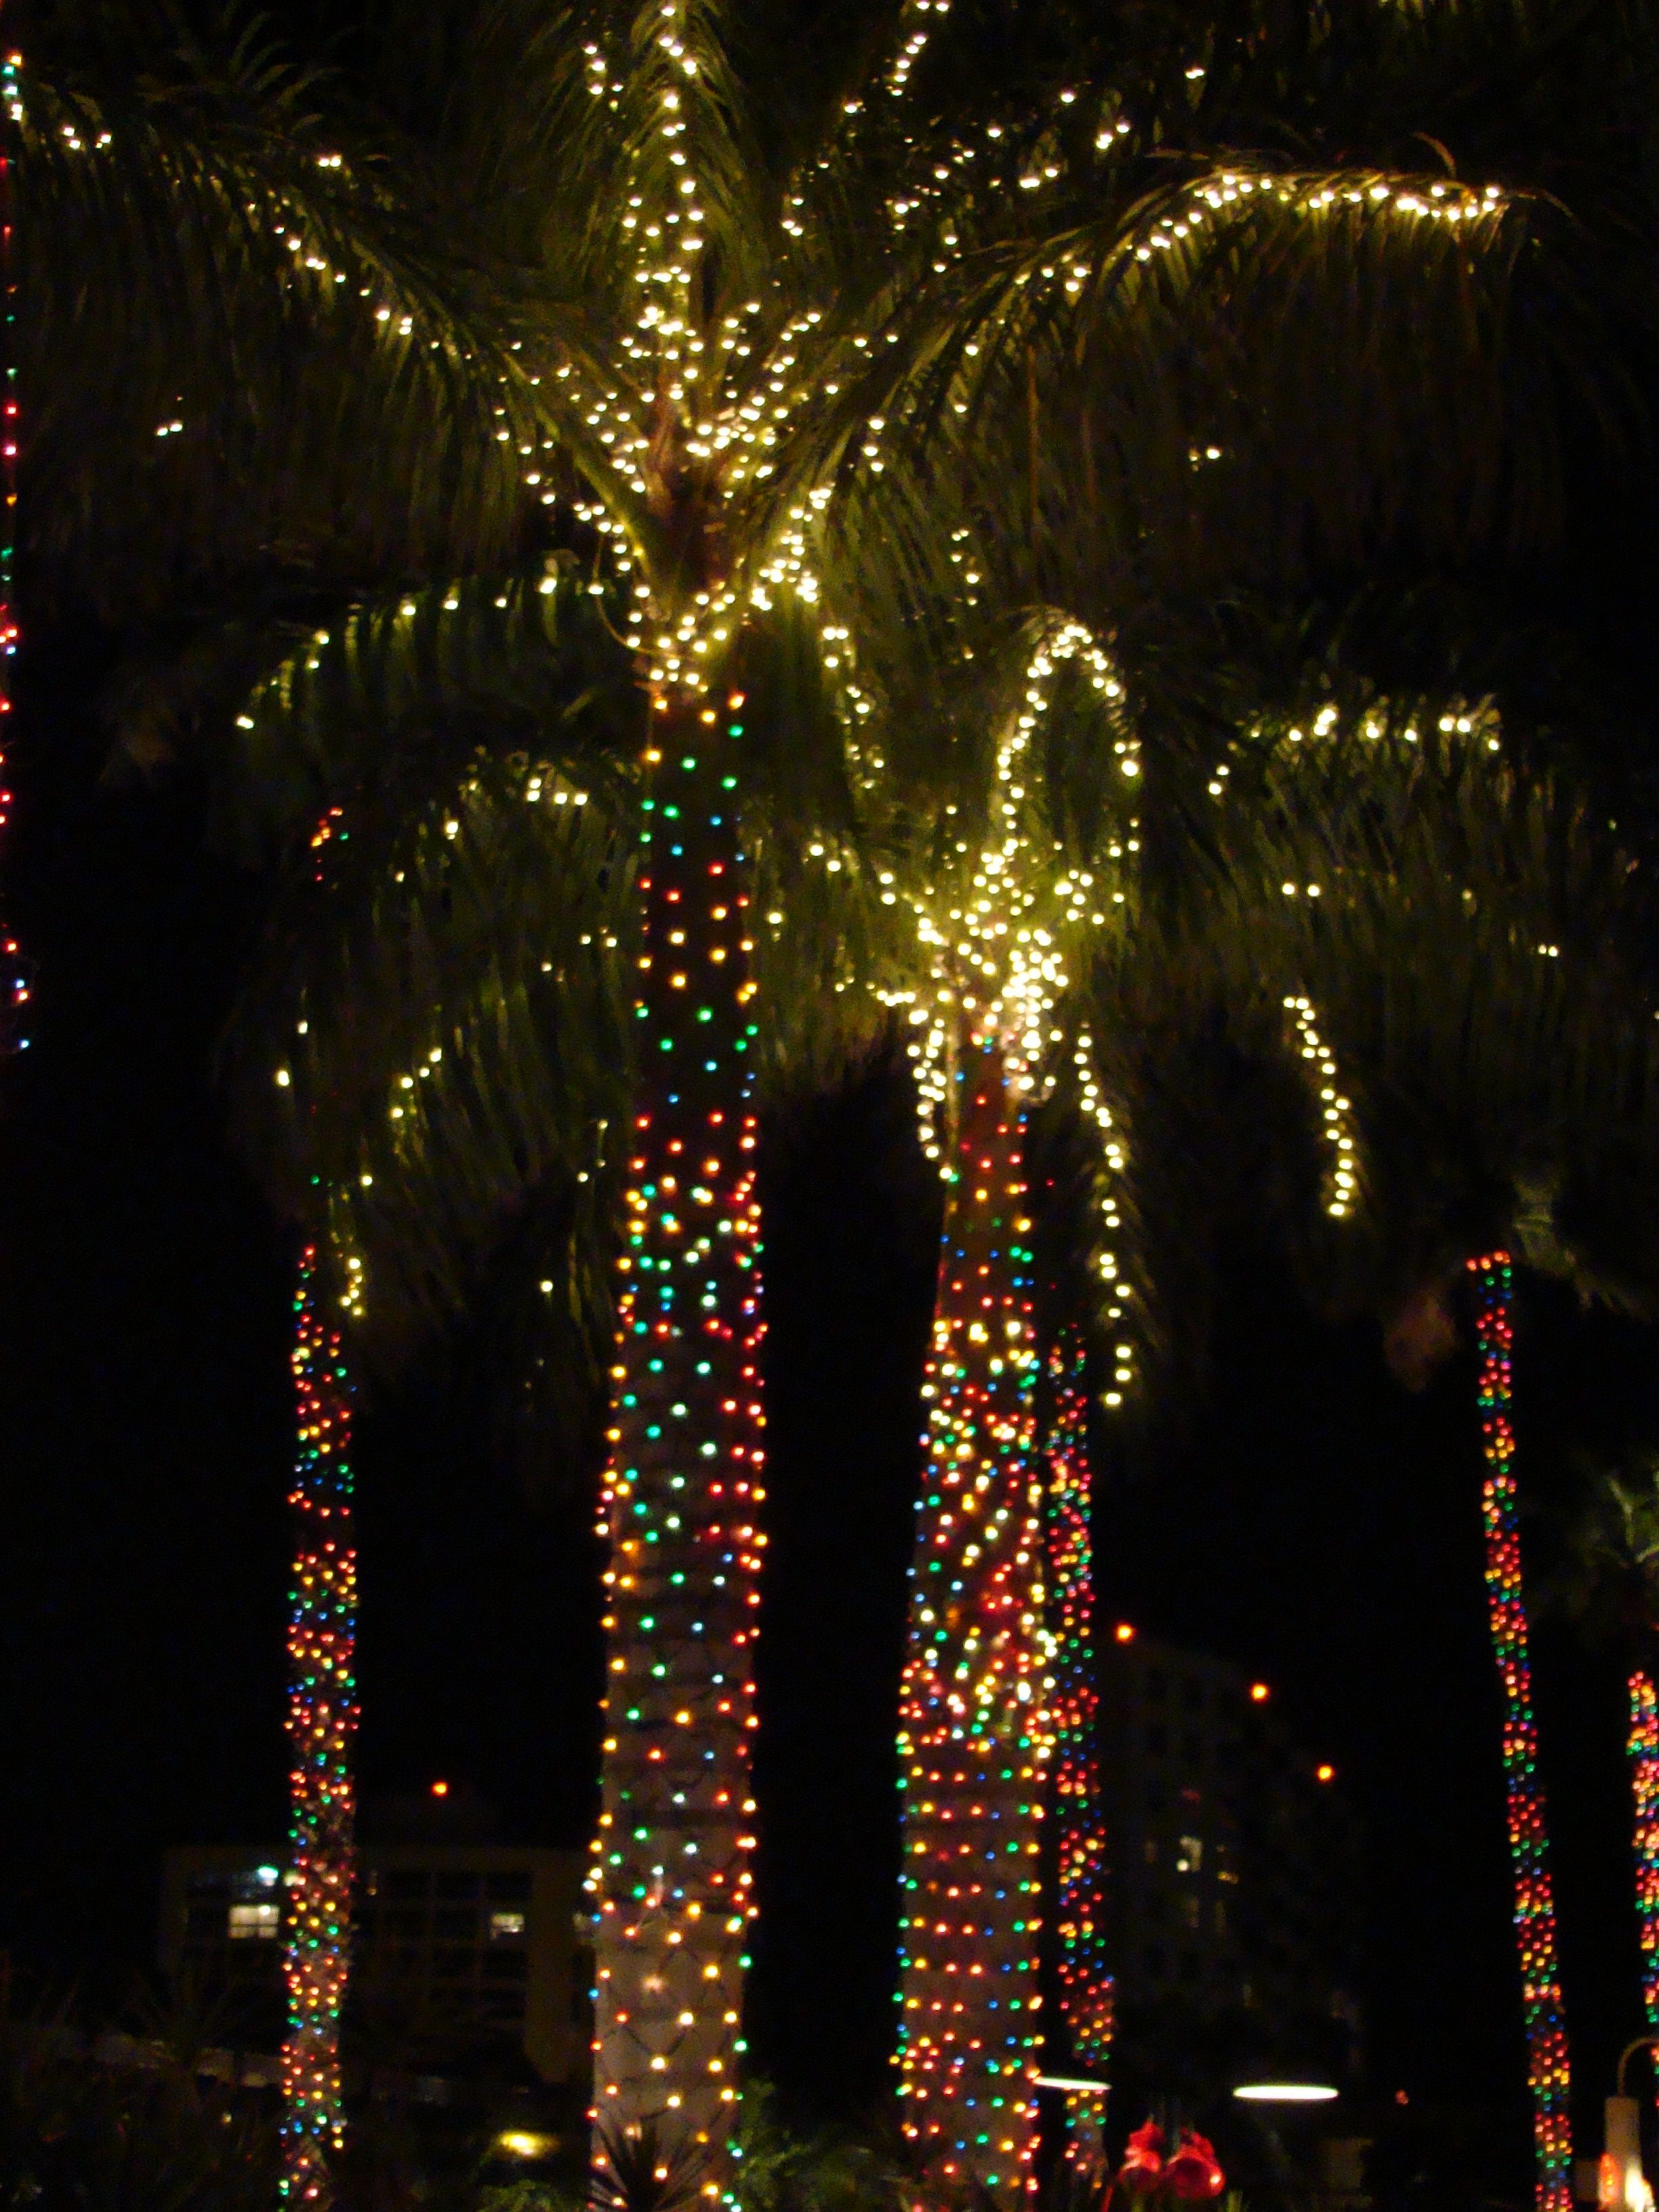 see even palm trees can look christmassy with pretty lights exteriorchristmaslights